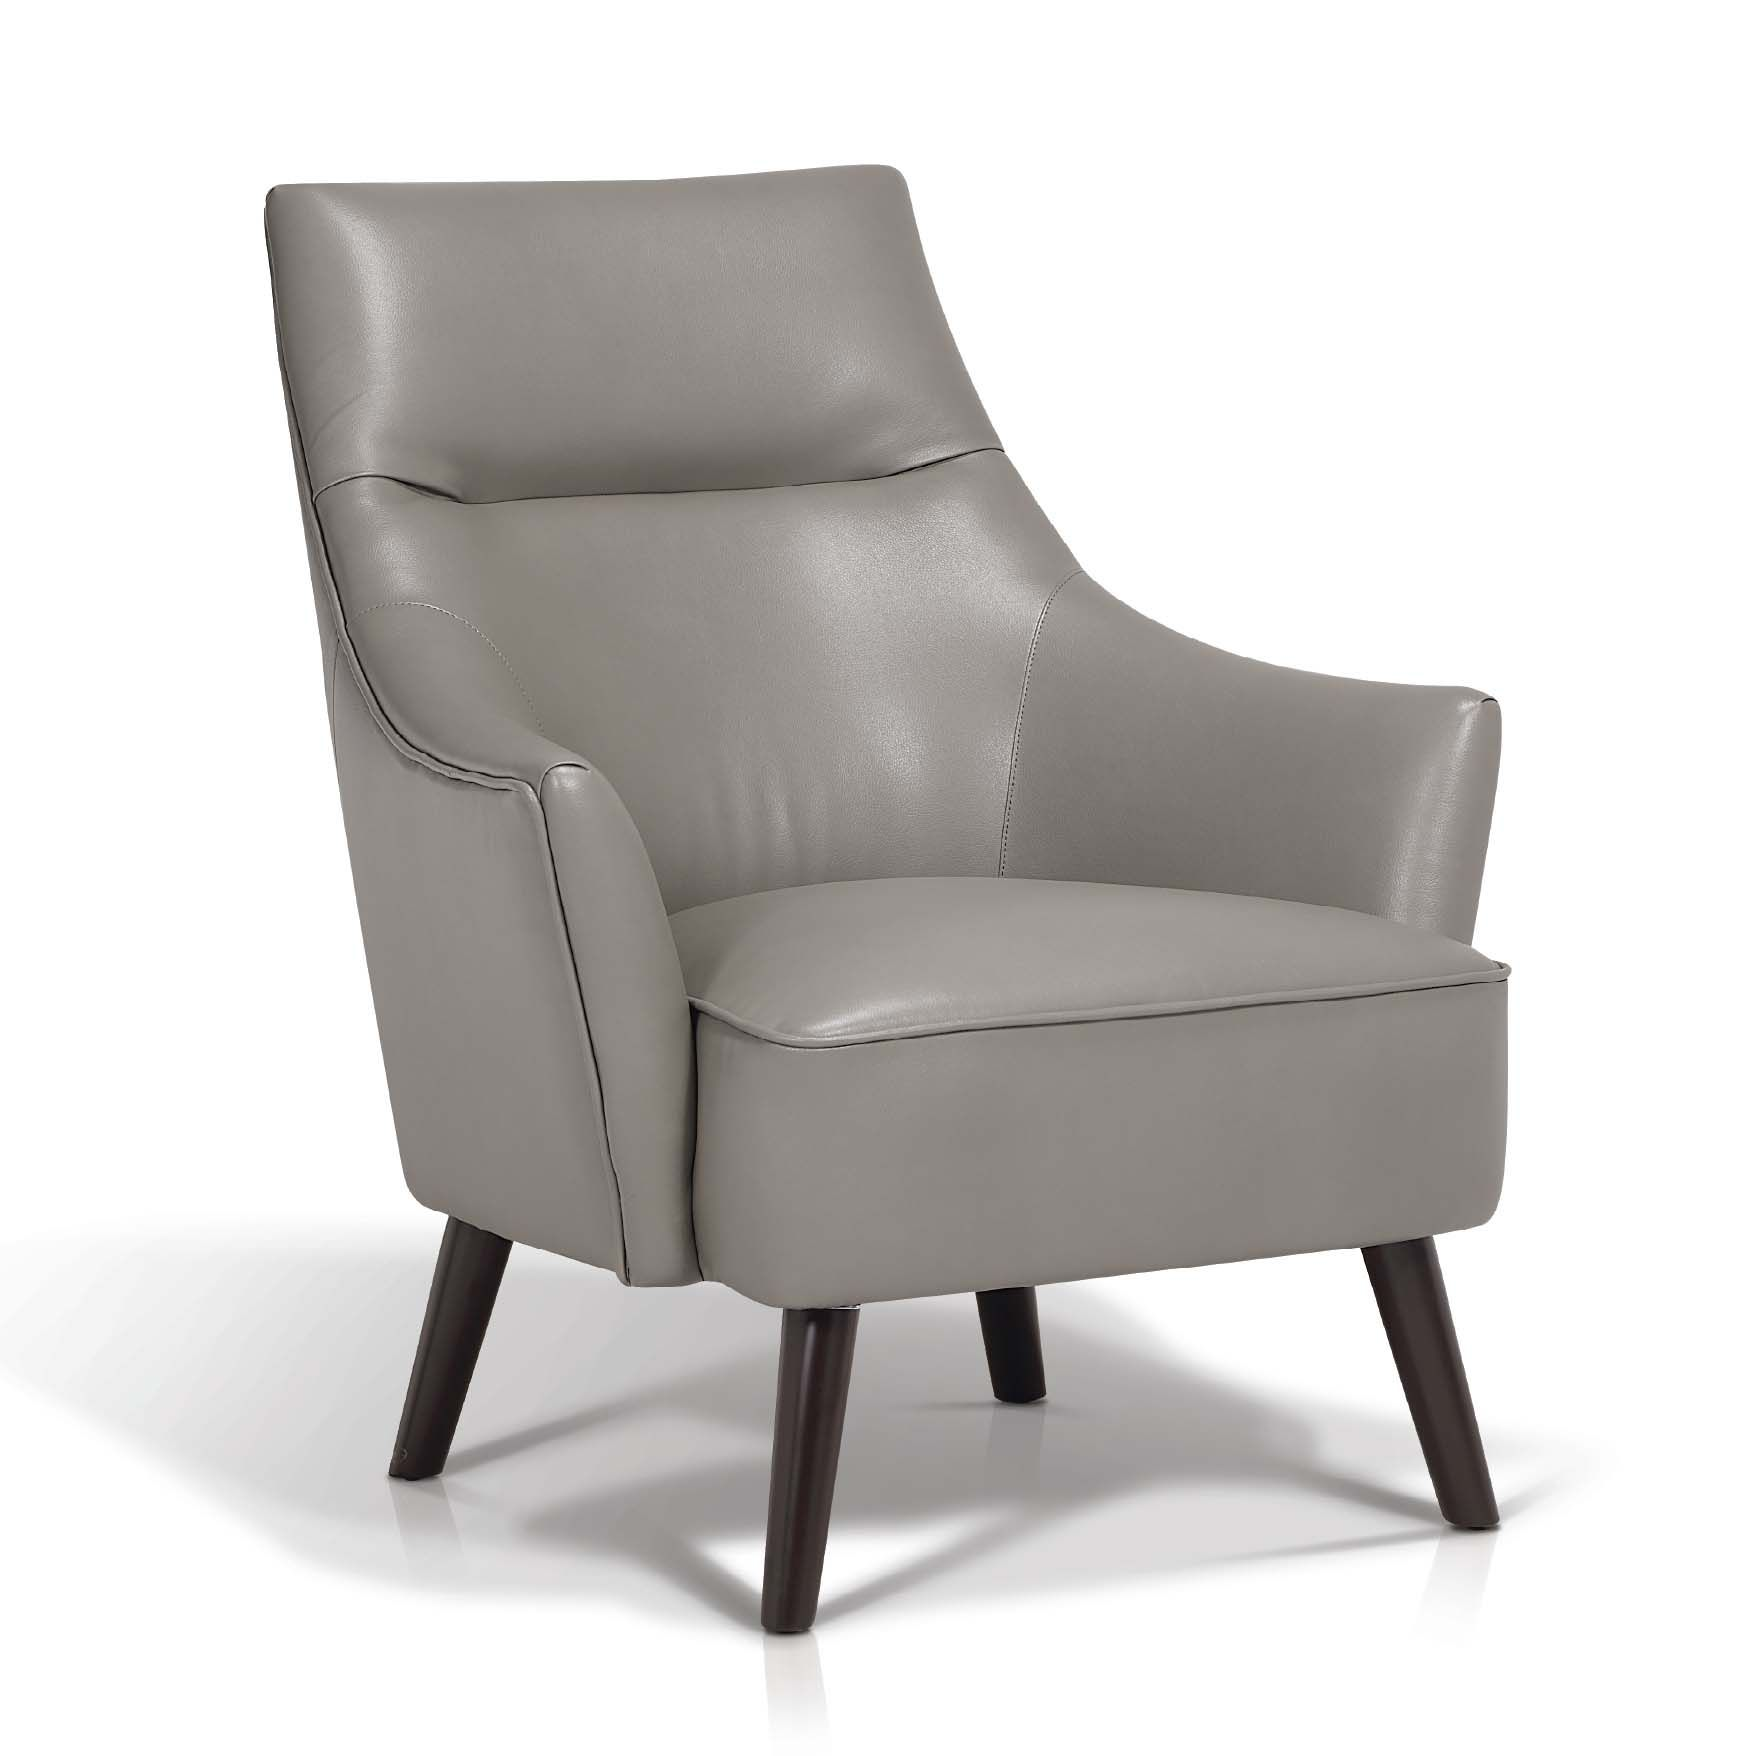 Grey Leather Club Chair Stuhl Stoff Stuhle Sessel